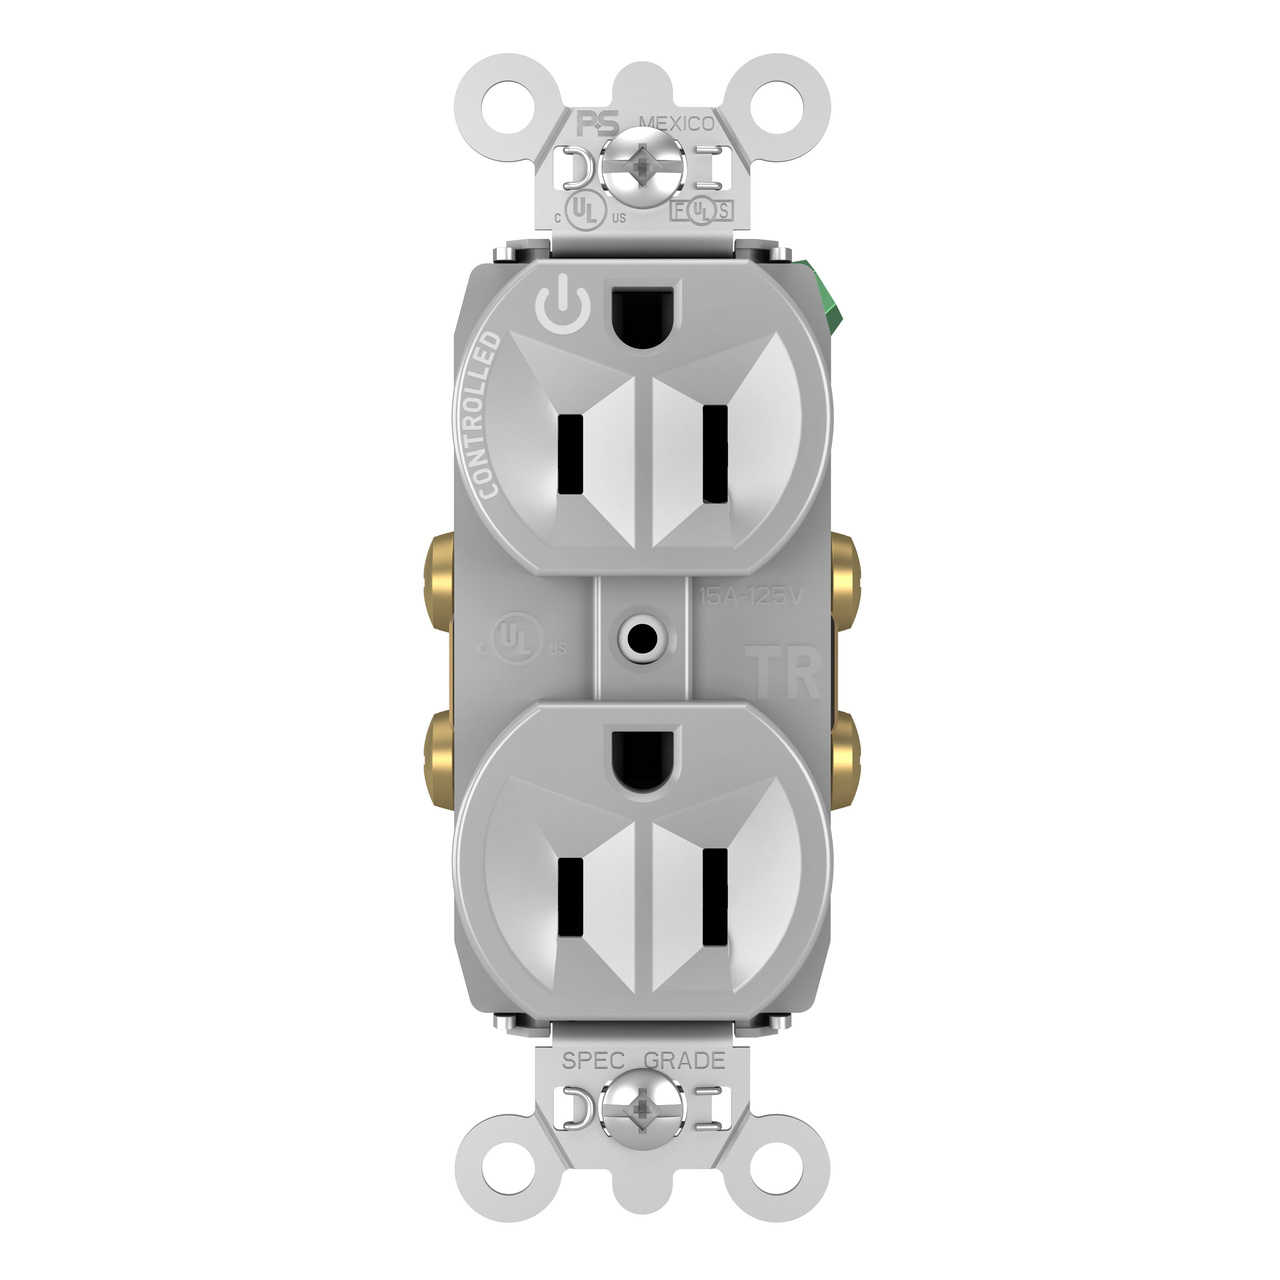 Hard-Use Spec Grade Plug Load Controllable Receptacle, 15A, 125V, Gray